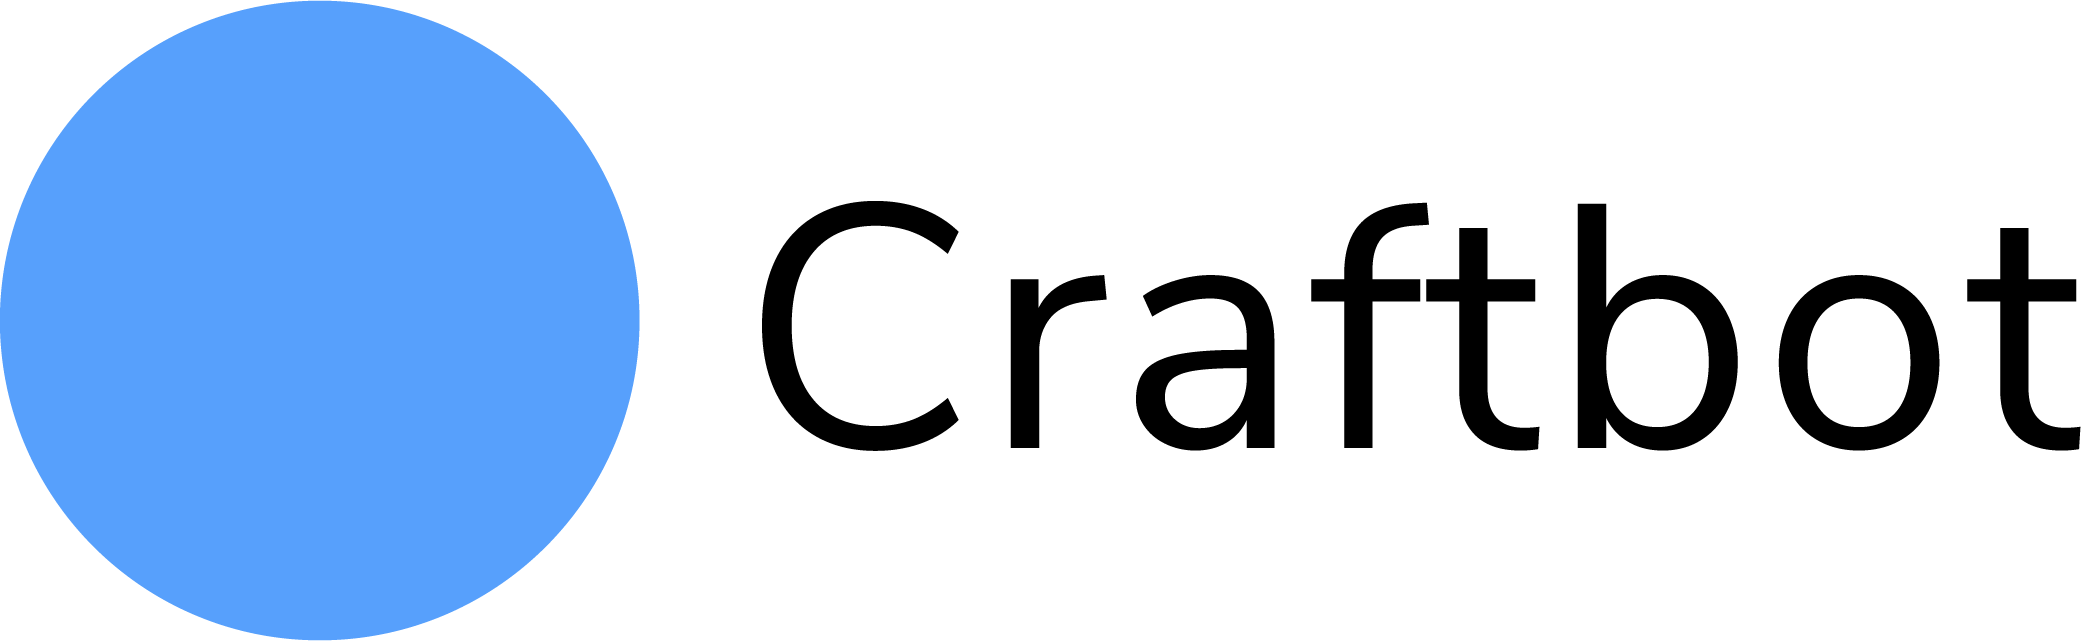 Craft-Bot